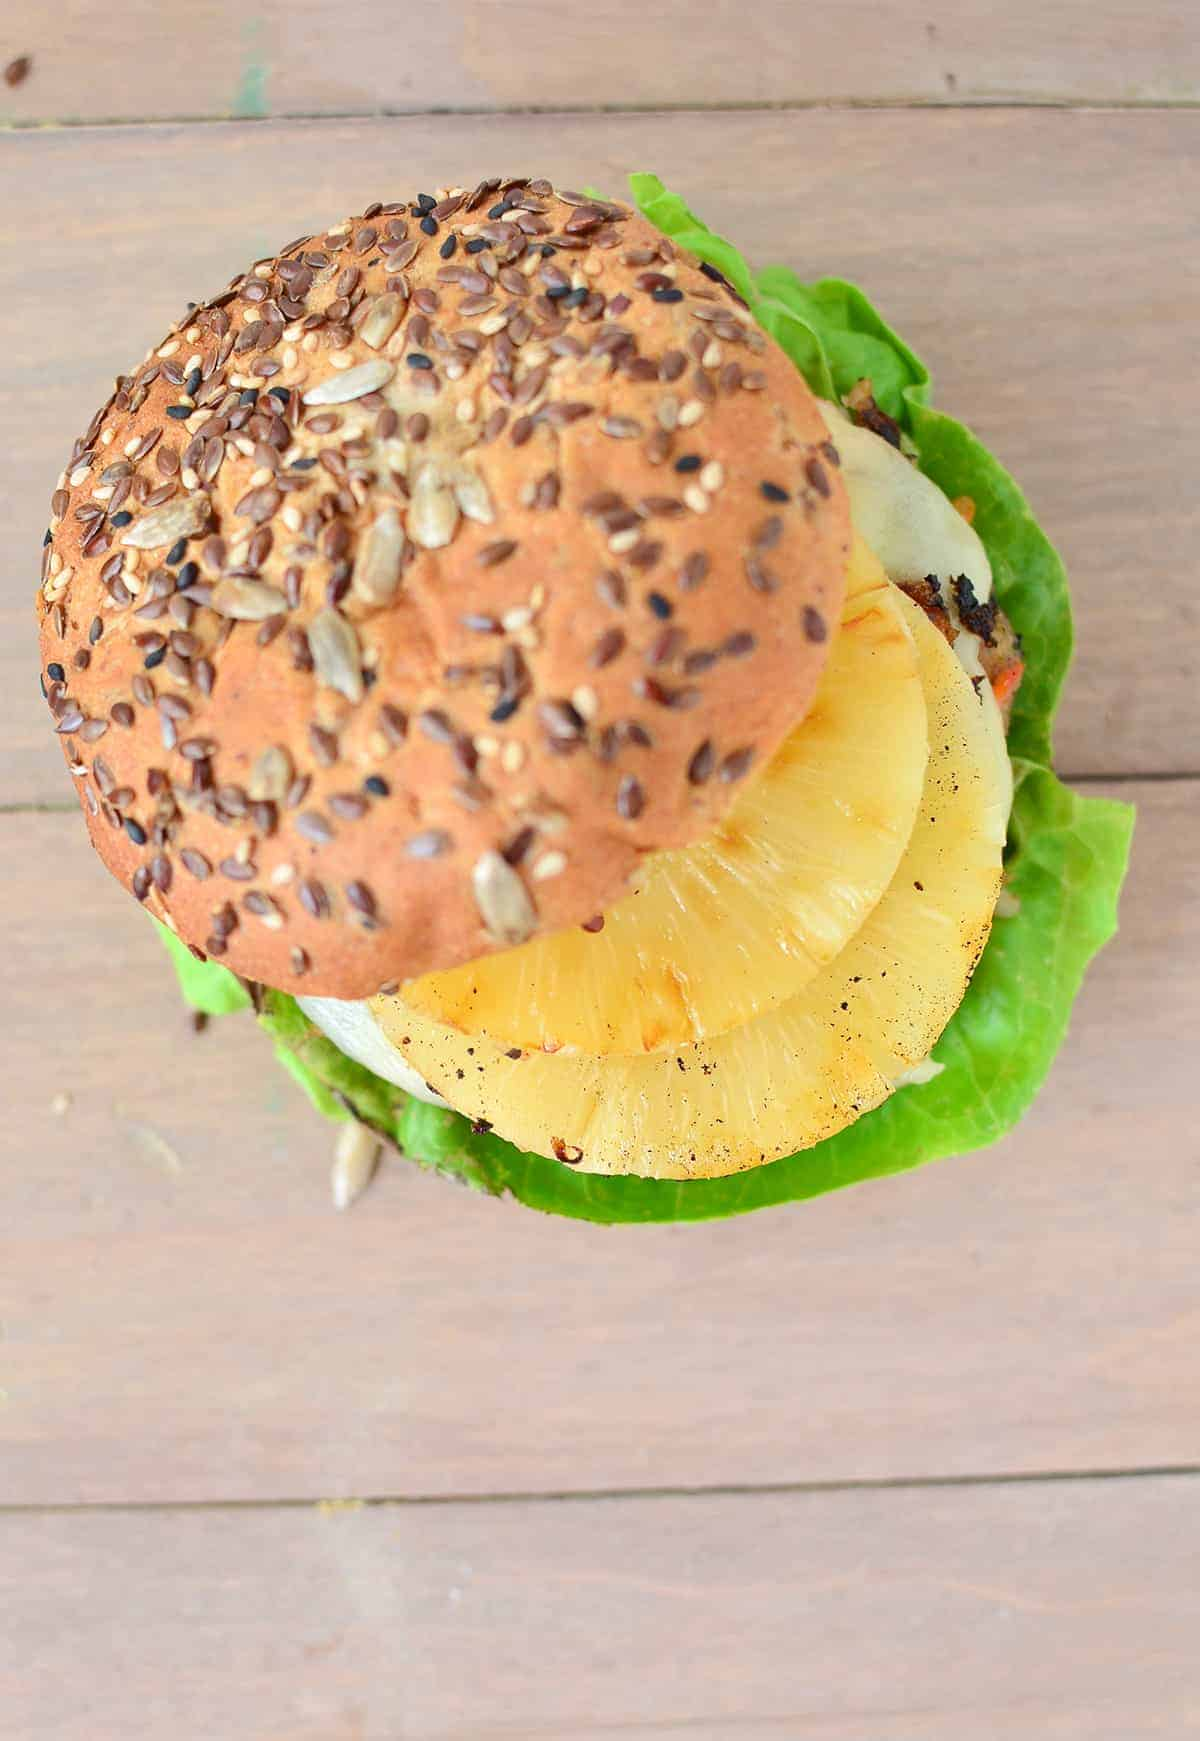 The BEST Veggie Burgers! Tropical Black Bean Patty with Grilled Pineapple and Swiss! You have to make this one. #vegetarian | www.delishknowledge.com